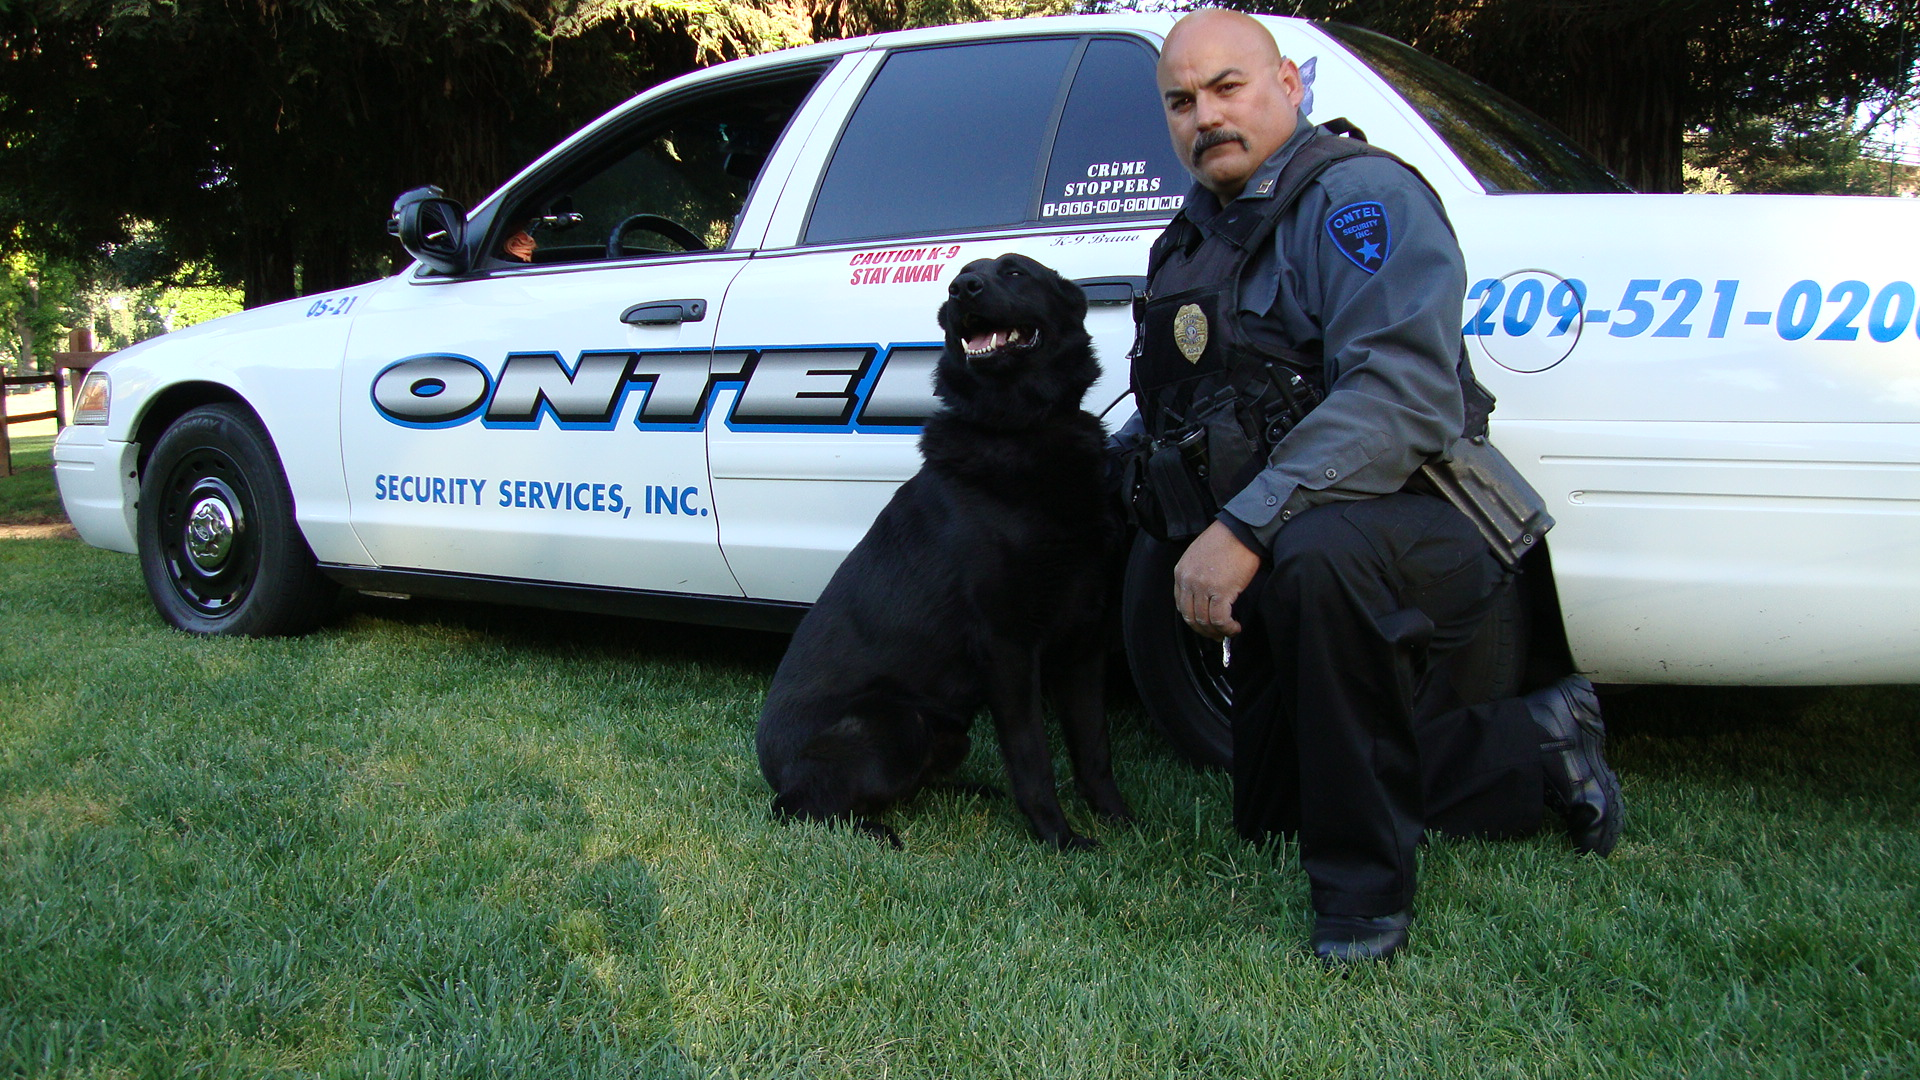 K-9 Ontel Security Services